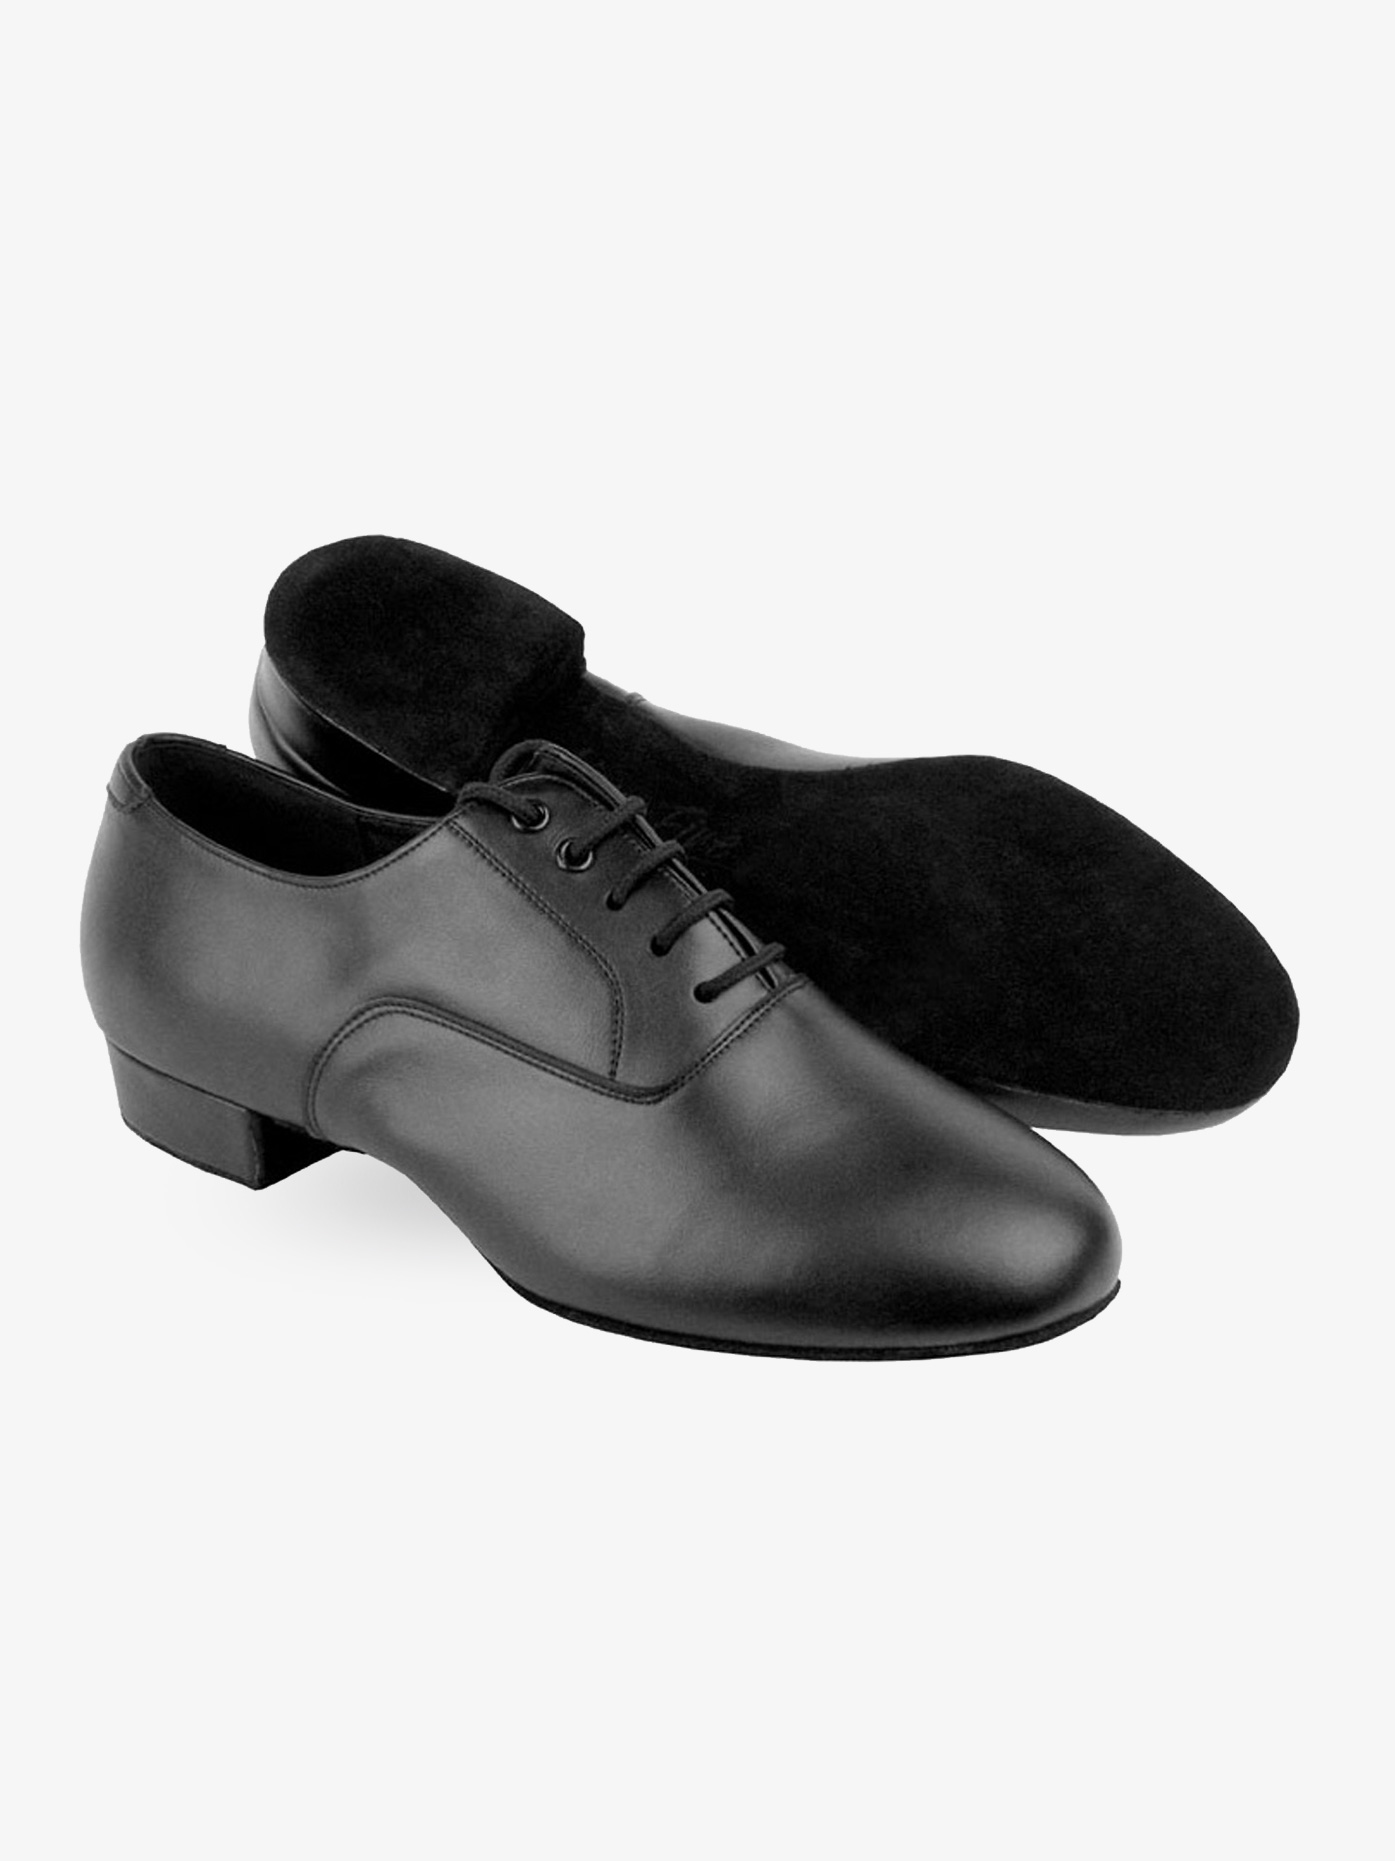 Very Fine Shoes Mens Standard-C Series Wide Width Ballroom Shoes C919101W